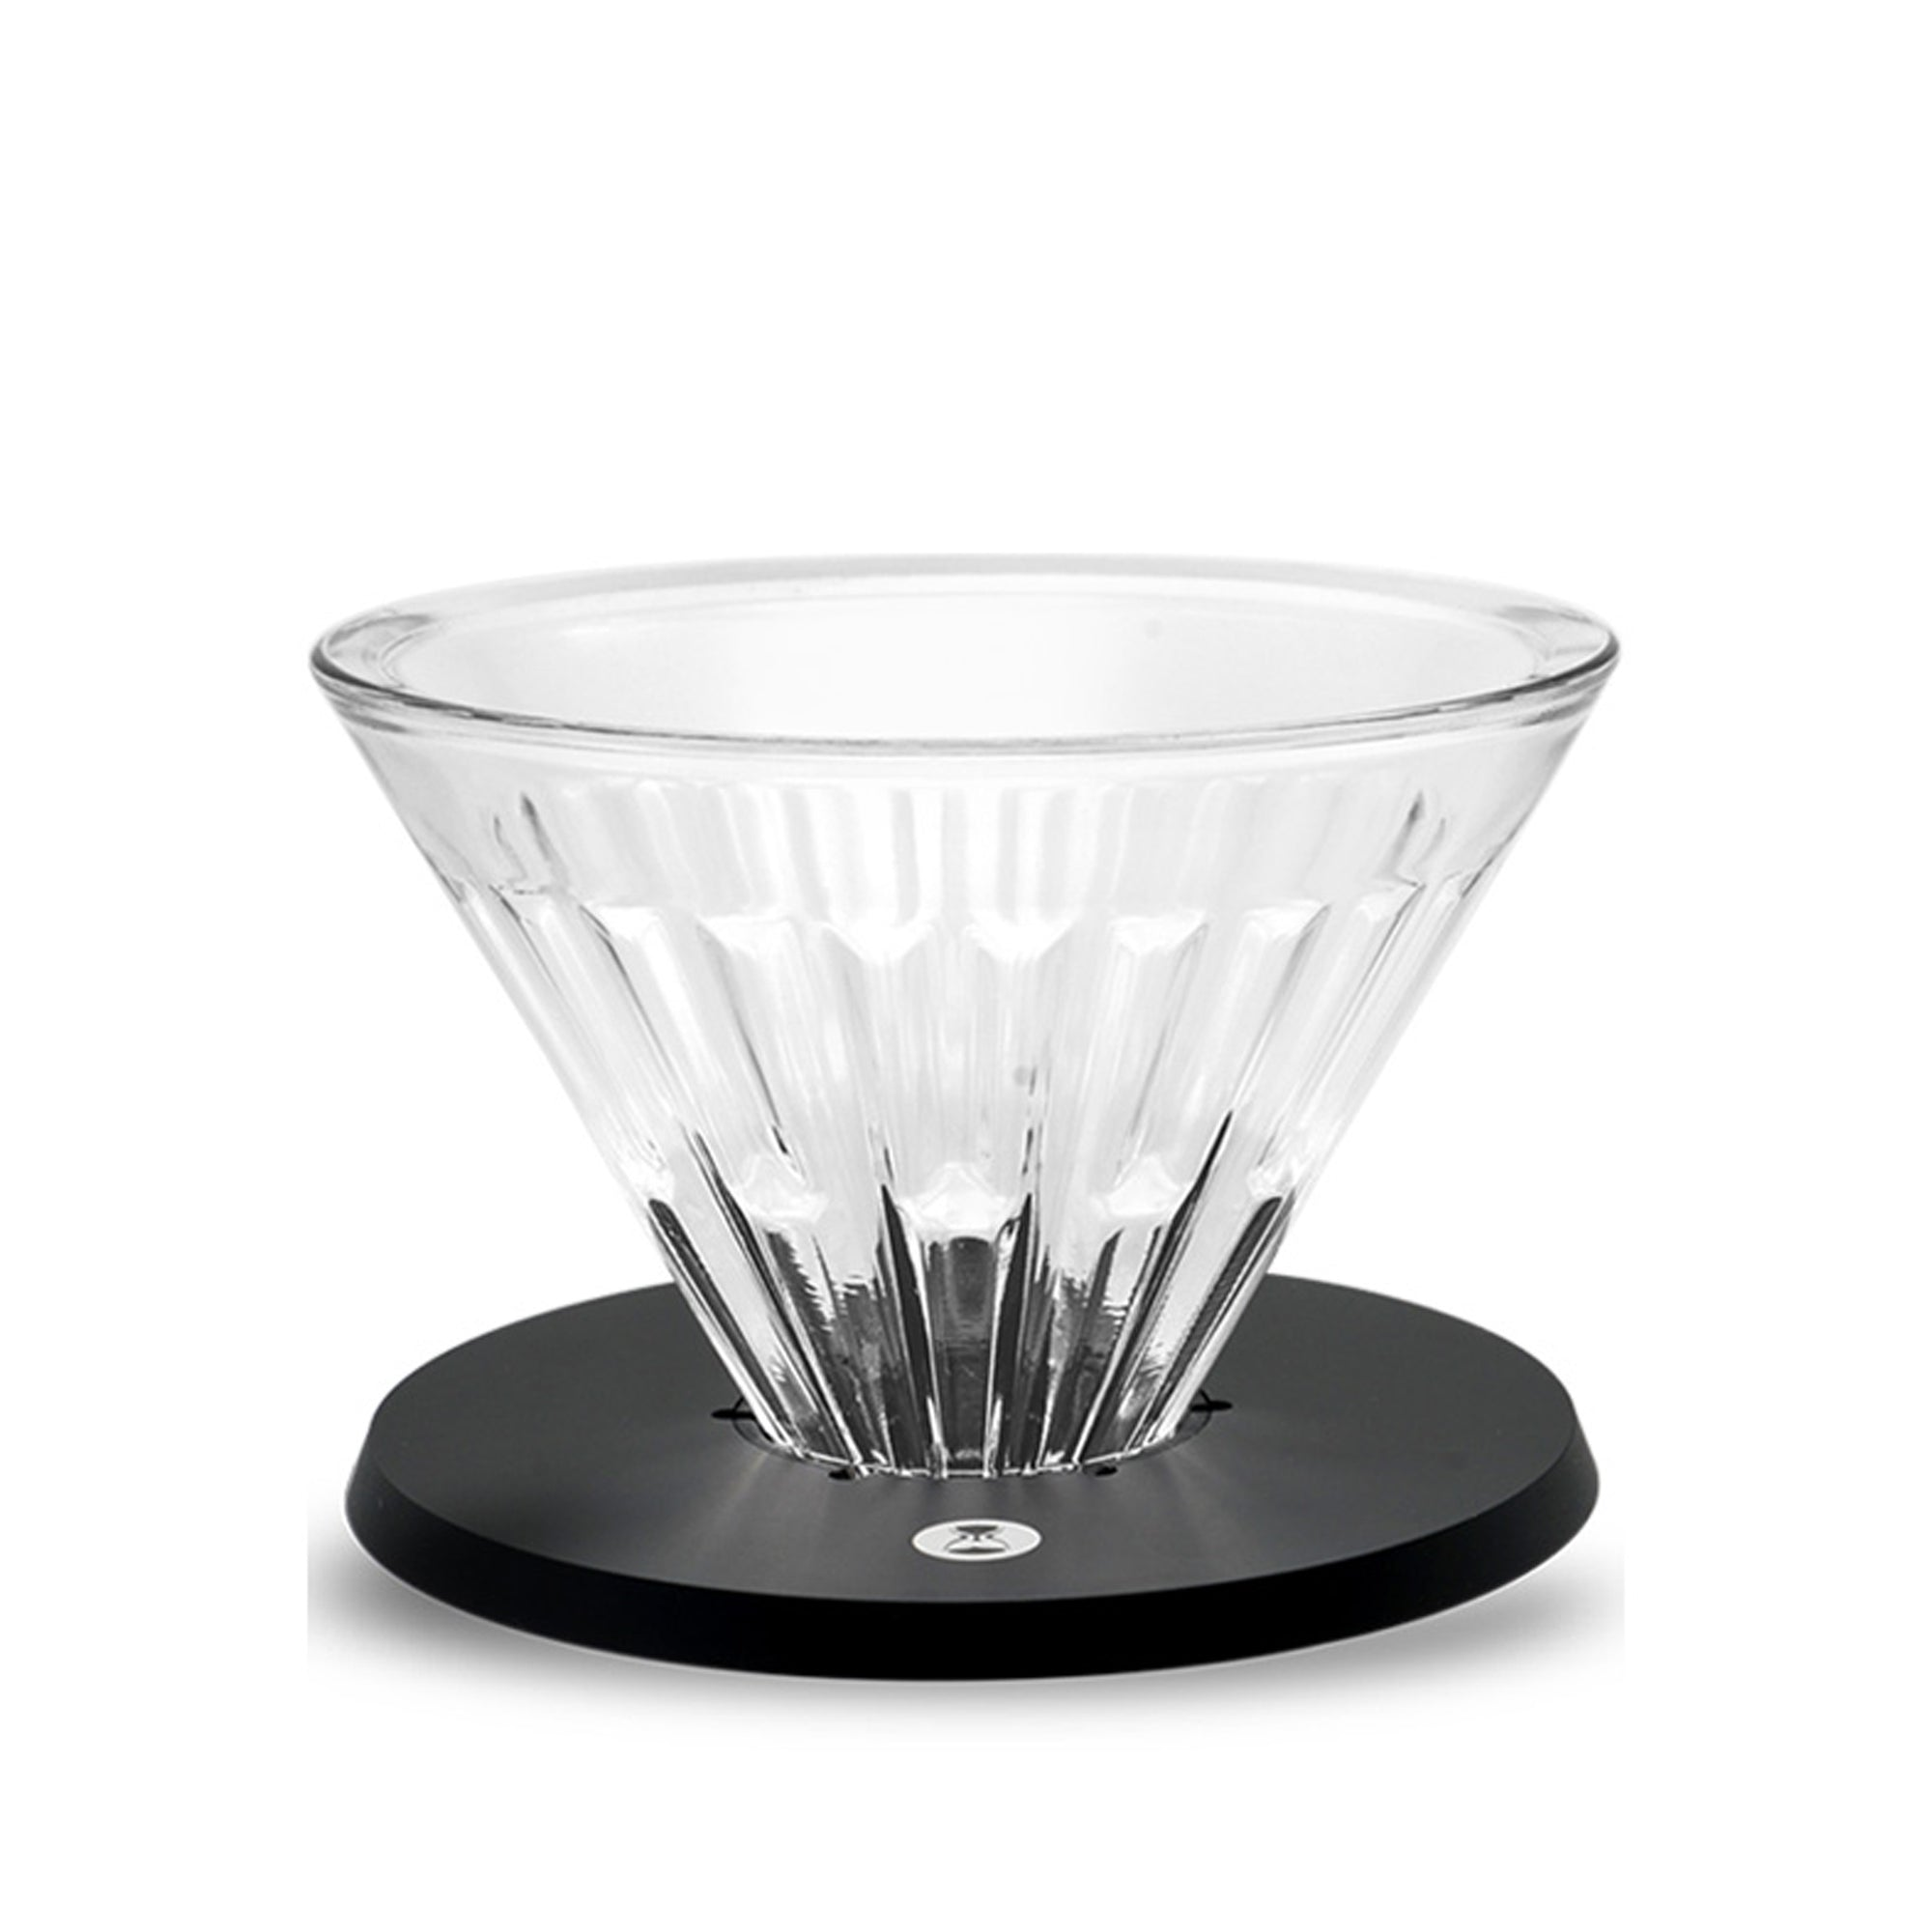 Timemore V60 Crystal Eye Dripper - Timemore - Espresso Gear